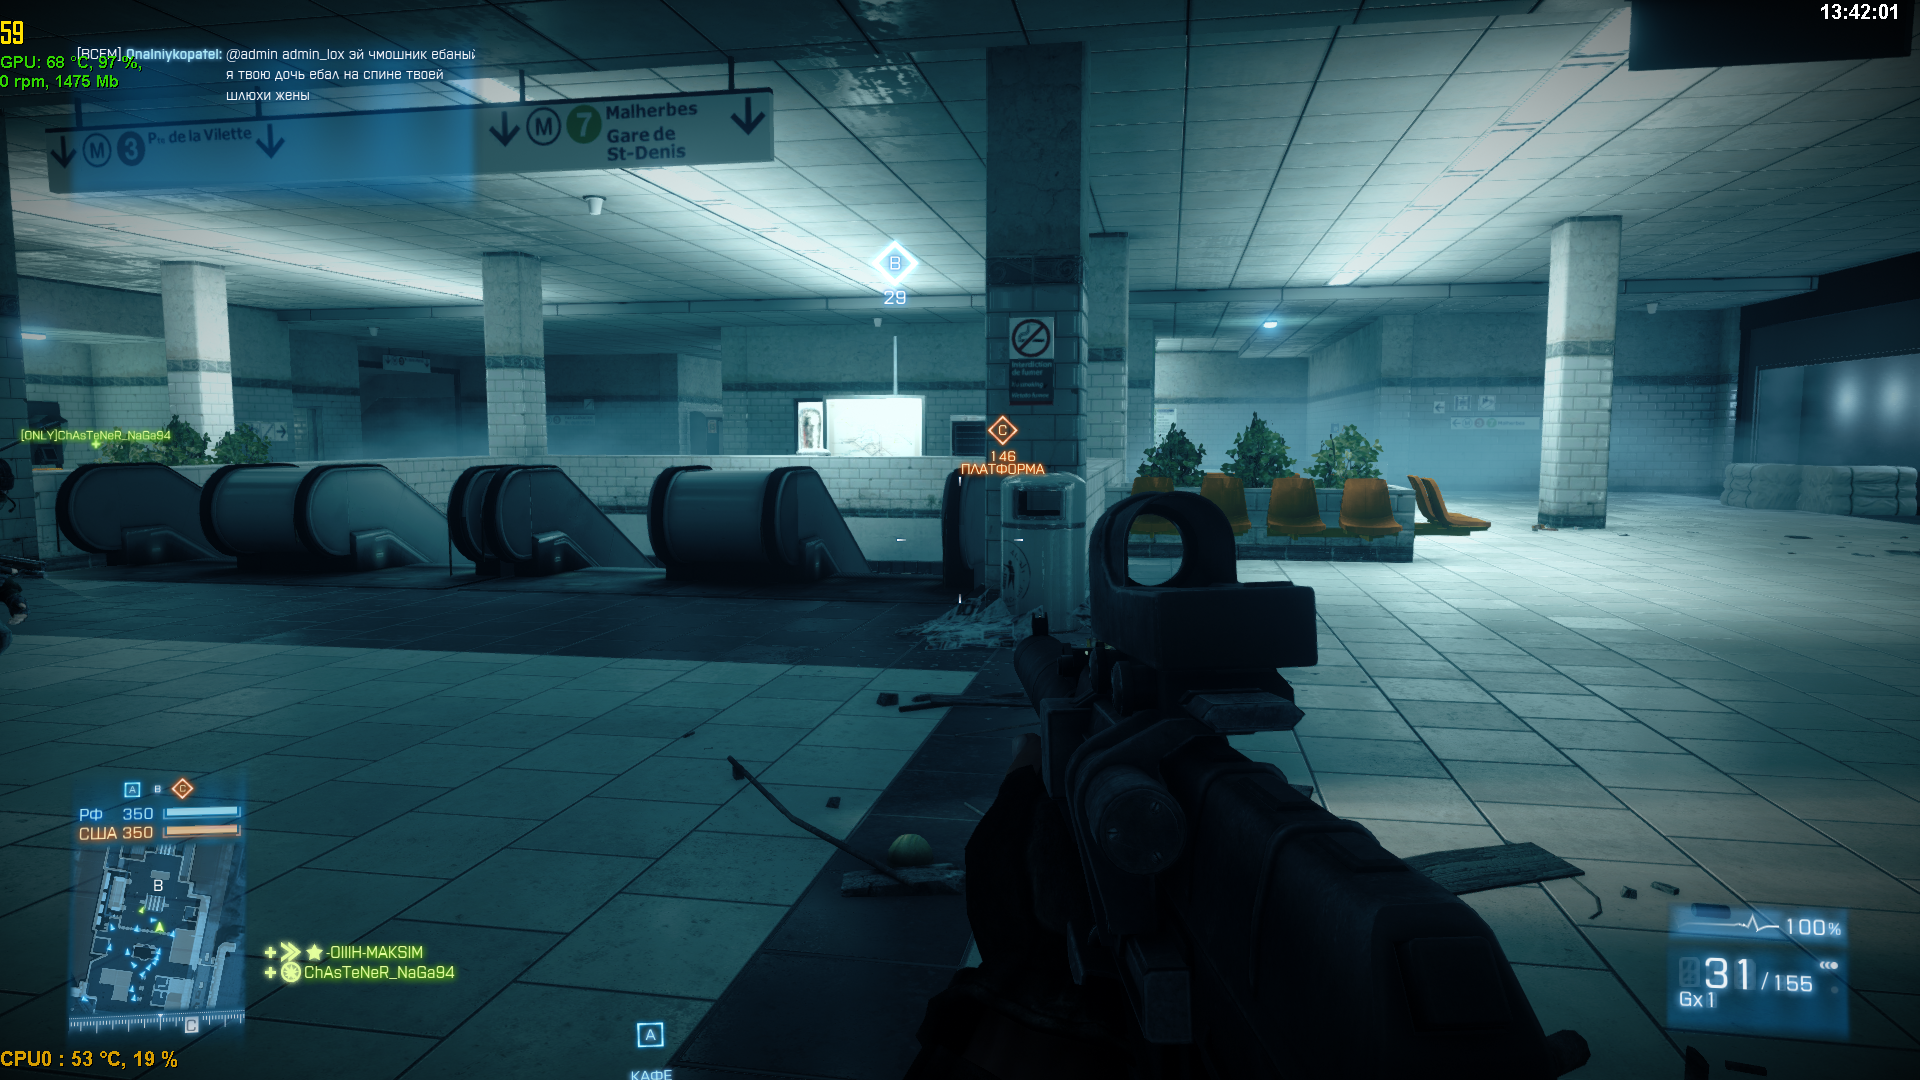 bf3_2014-11-30_13-42-01.png